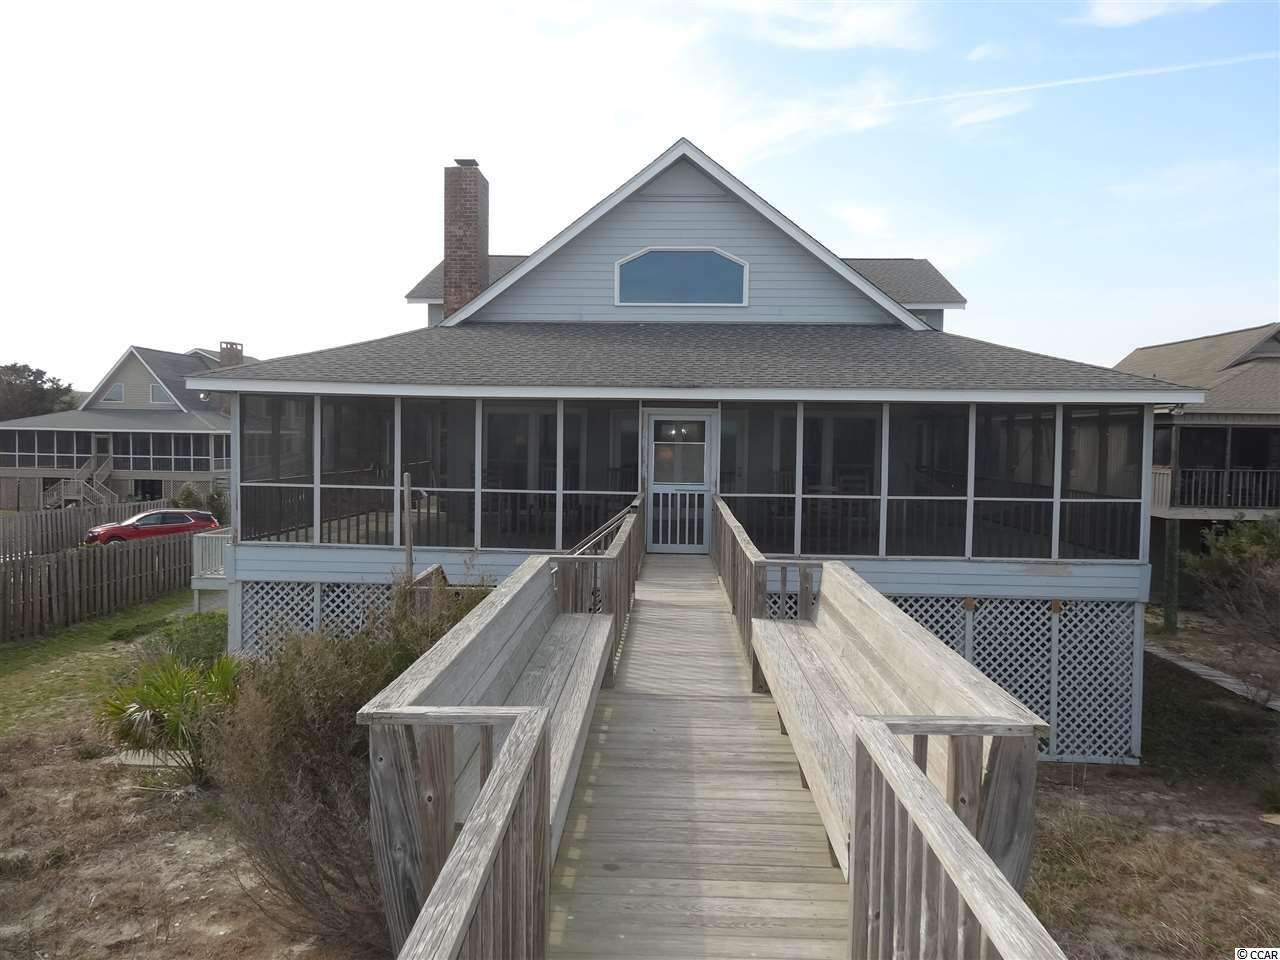 4 week interval available at Gray Man III, oceanfront on Pawleys Island, SC.  Don't miss you opportunity to own a share of this 5 bedroom and 4 bath home (sleeps 12 comfortably) with stunning views of the ocean, beach, and sand dunes.  Expansive screened in porch with plenty of seating, porch swing, and a hammock to enjoy the breathtaking sunrises while sipping on your morning coffee or winding down in the evening while enjoying your favorite beverage of choice.  Large great room with vaulted ceilings, wood burning fireplace, and large screen TV.  Kitchen with Silestone Quartz Counter Tops, breakfast bar, and plenty of room to cook your favorite low country meals.  Large master bedroom with flat screen TV, ceiling fan, 2 closets, and private master bathroom.  The 2 bedrooms upstairs each have their own private bathrooms as well.  Storage room underneath home for storage of your shared beach gear, bicycles, and an extra refrigerator for storage.  Laundry room off of kitchen, each bedroom has a ceiling fan, and loft area for game playing and extra living space.  Walkway decking to beach with multiple bench areas to relax and take in the ocean air and outdoor shower to rinse off after your time on the beach.  Close to area restaurants, night life, shopping, and championship golf courses.